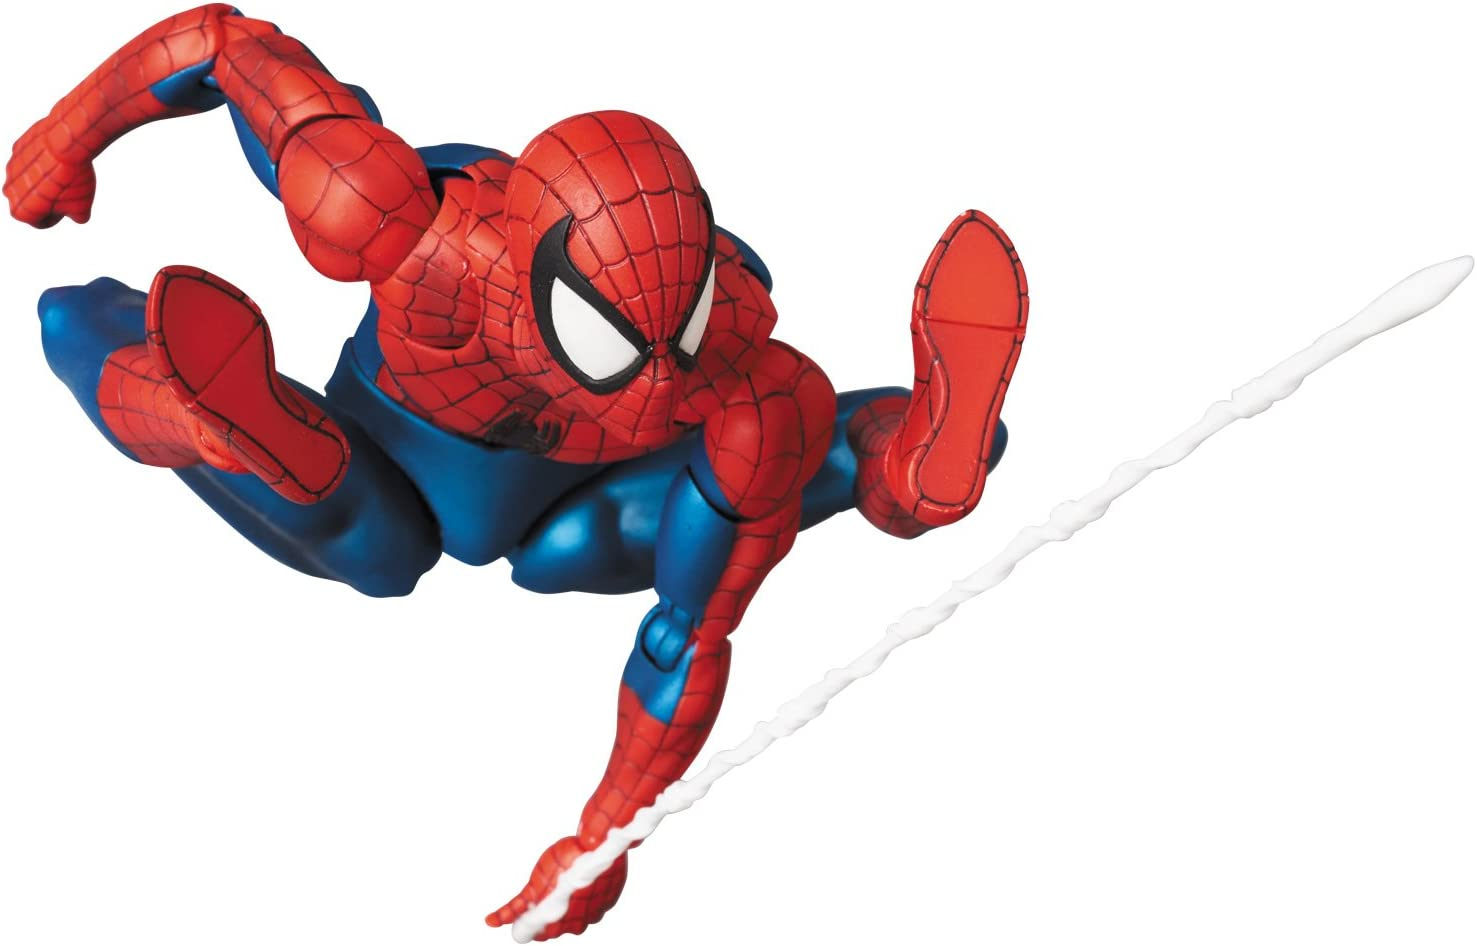 Avengers Spider-Man Peter Parker No.075 Comic Ver Action Figurine New In Box